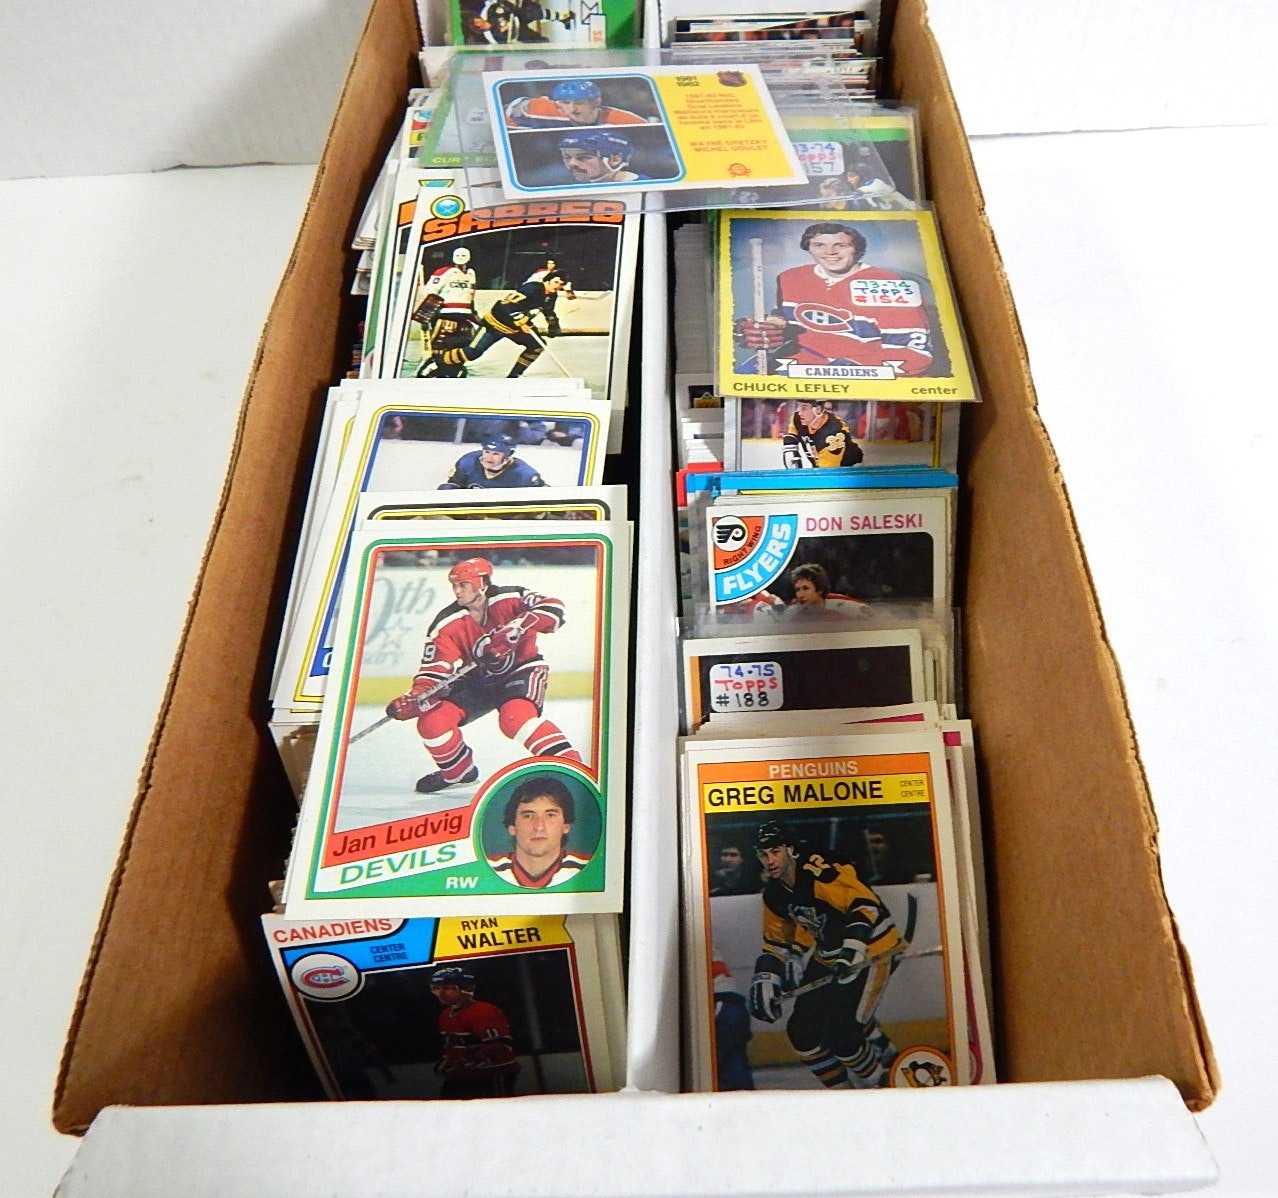 1970 to 1990s Box of Hockey Cards - Over 1000 Card Count